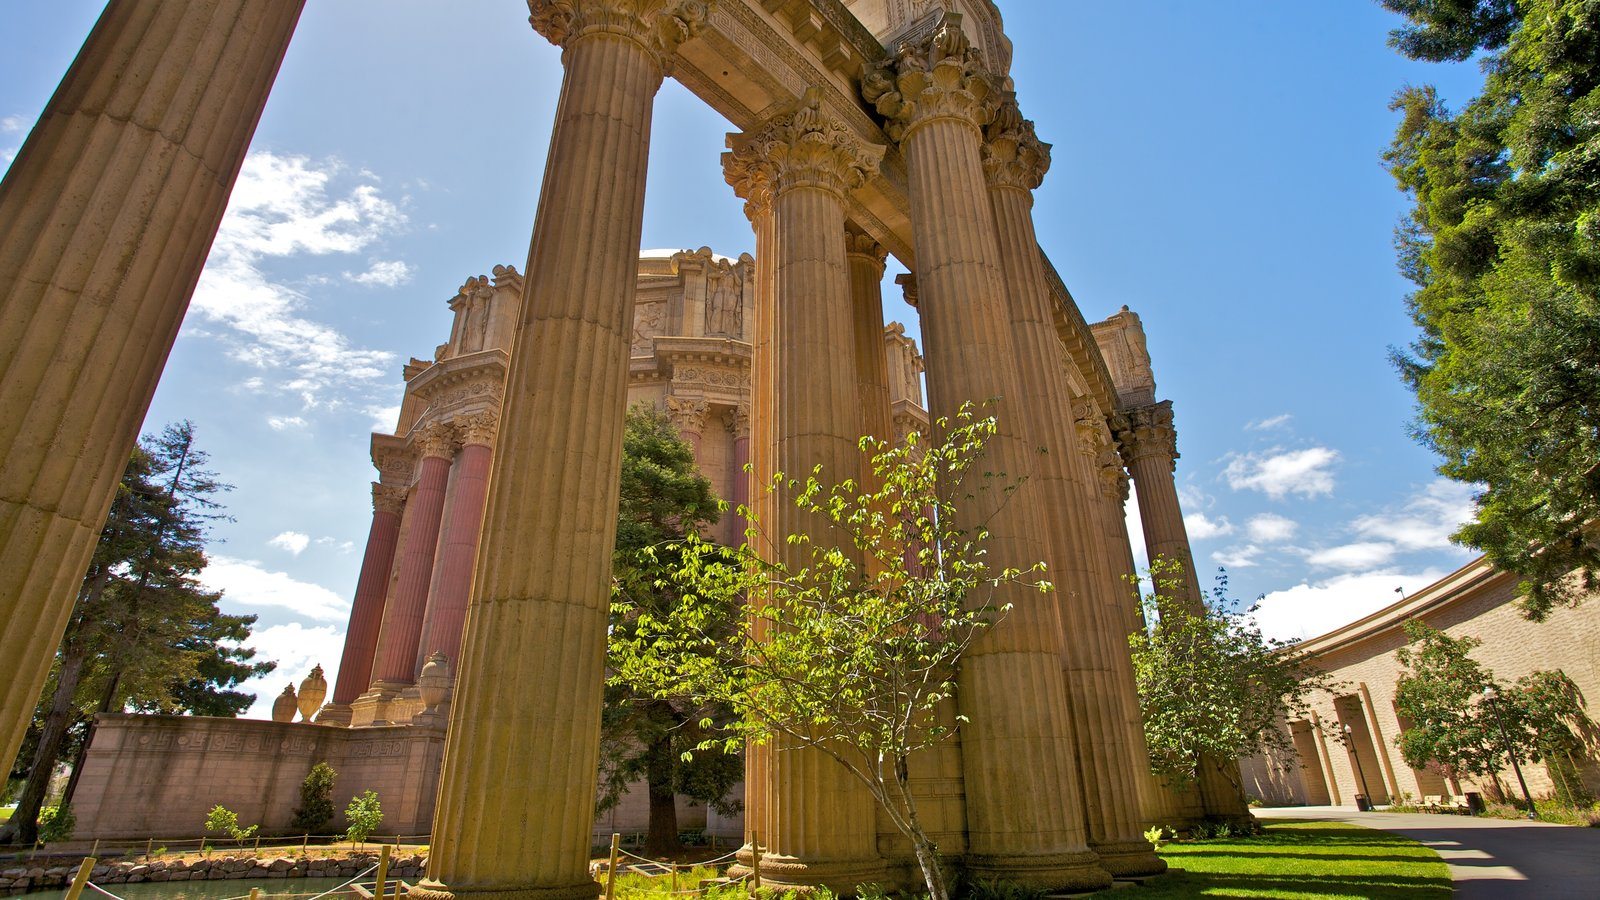 Palace of Fine Arts which includes heritage architecture and a monument